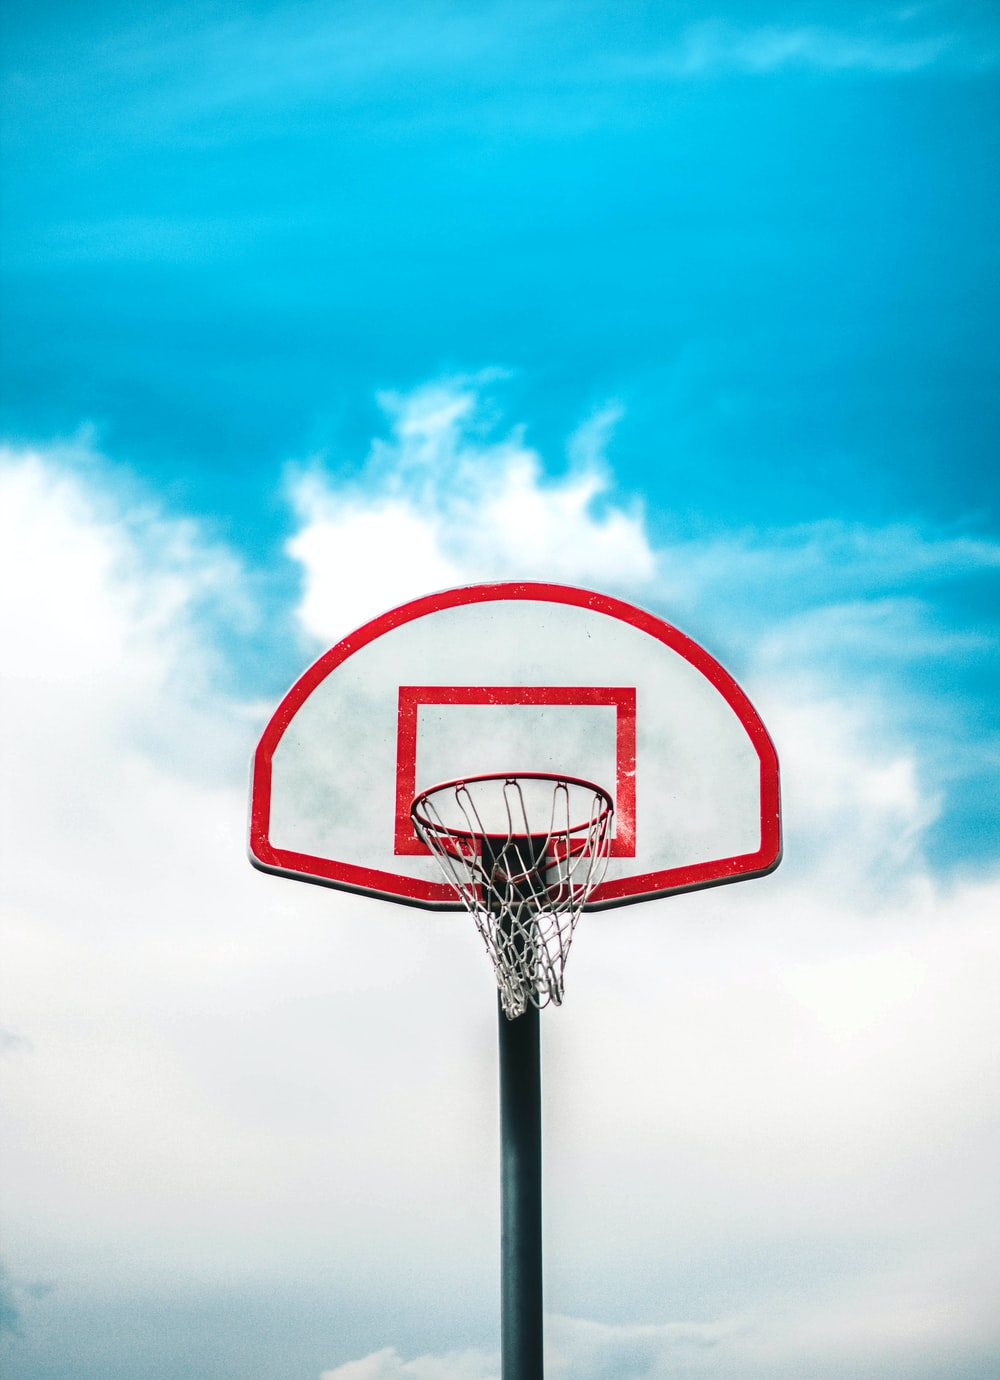 basketball hoop pictures hd download free images on unsplash